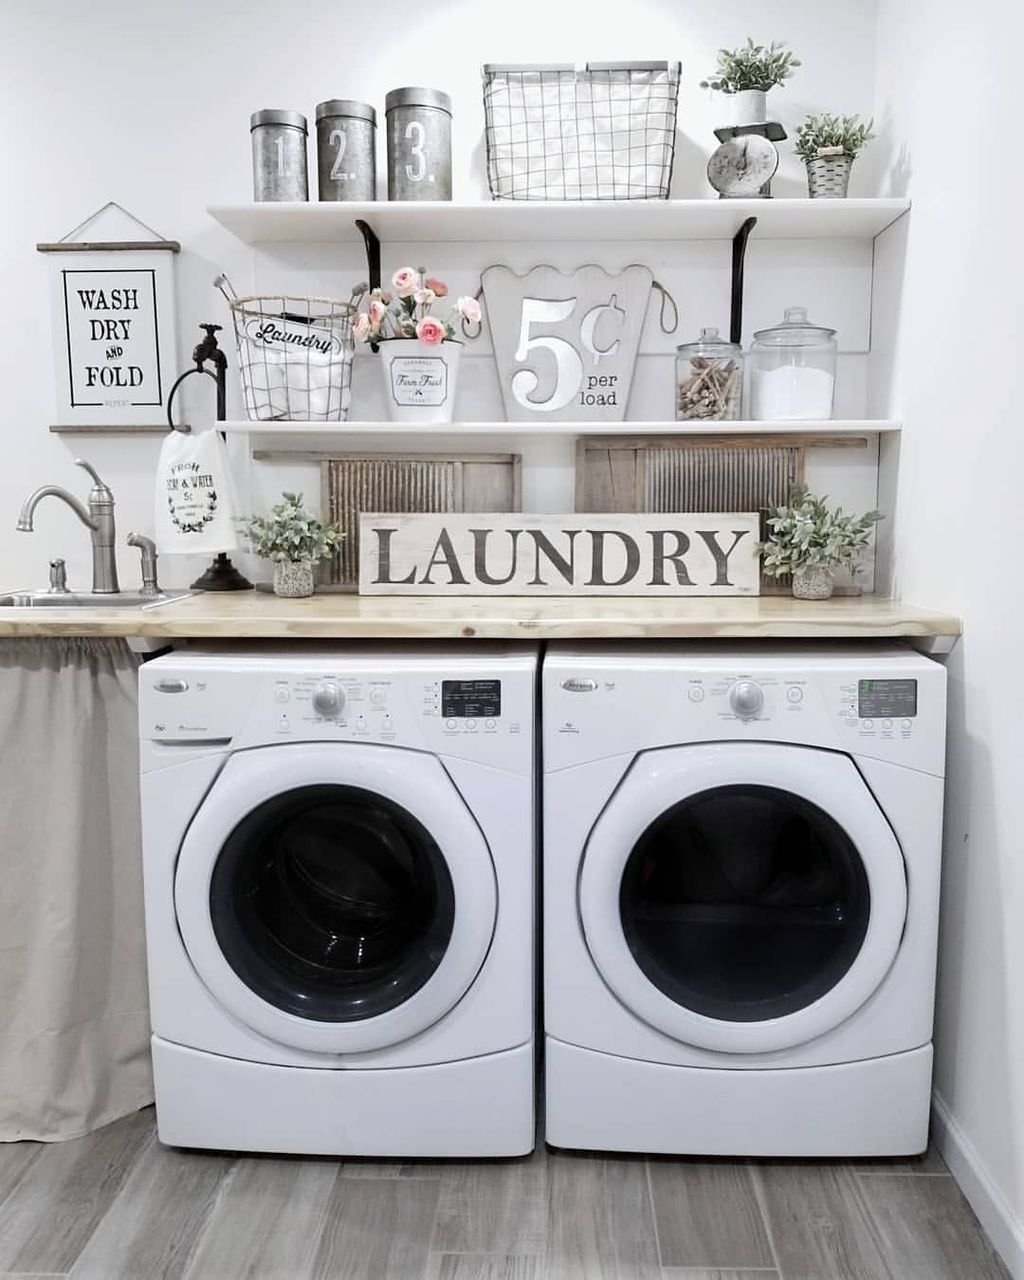 20 Amazing Laundry Room Decoration Ideas For Low Budget In 2020